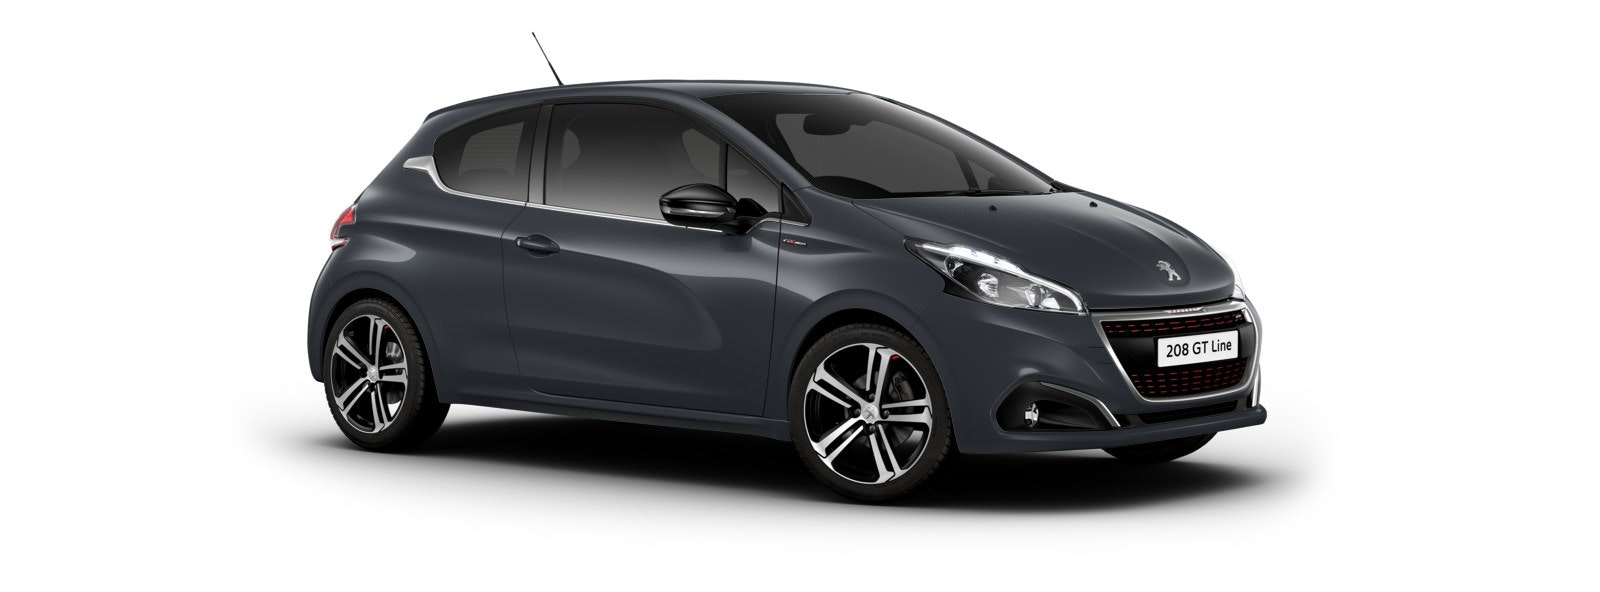 Peugeot 208 Colours Guide And Prices Carwow